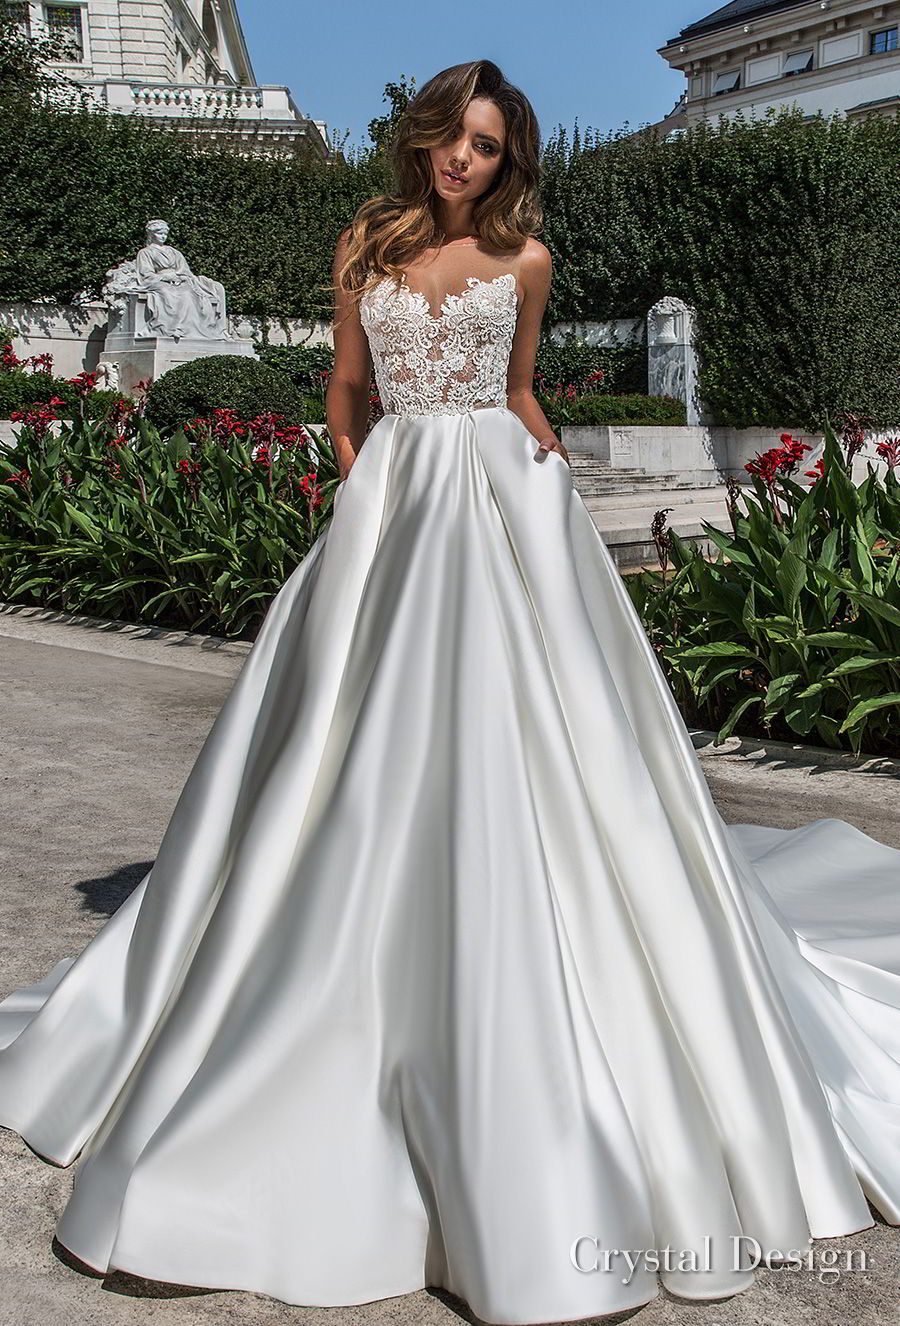 96e64b7869c1 crystal design 2018 sleeveless illusion boat sweetheart neckline heavily  embellished bodice satin romantic skirt a line wedding dress with pockets  open back ...